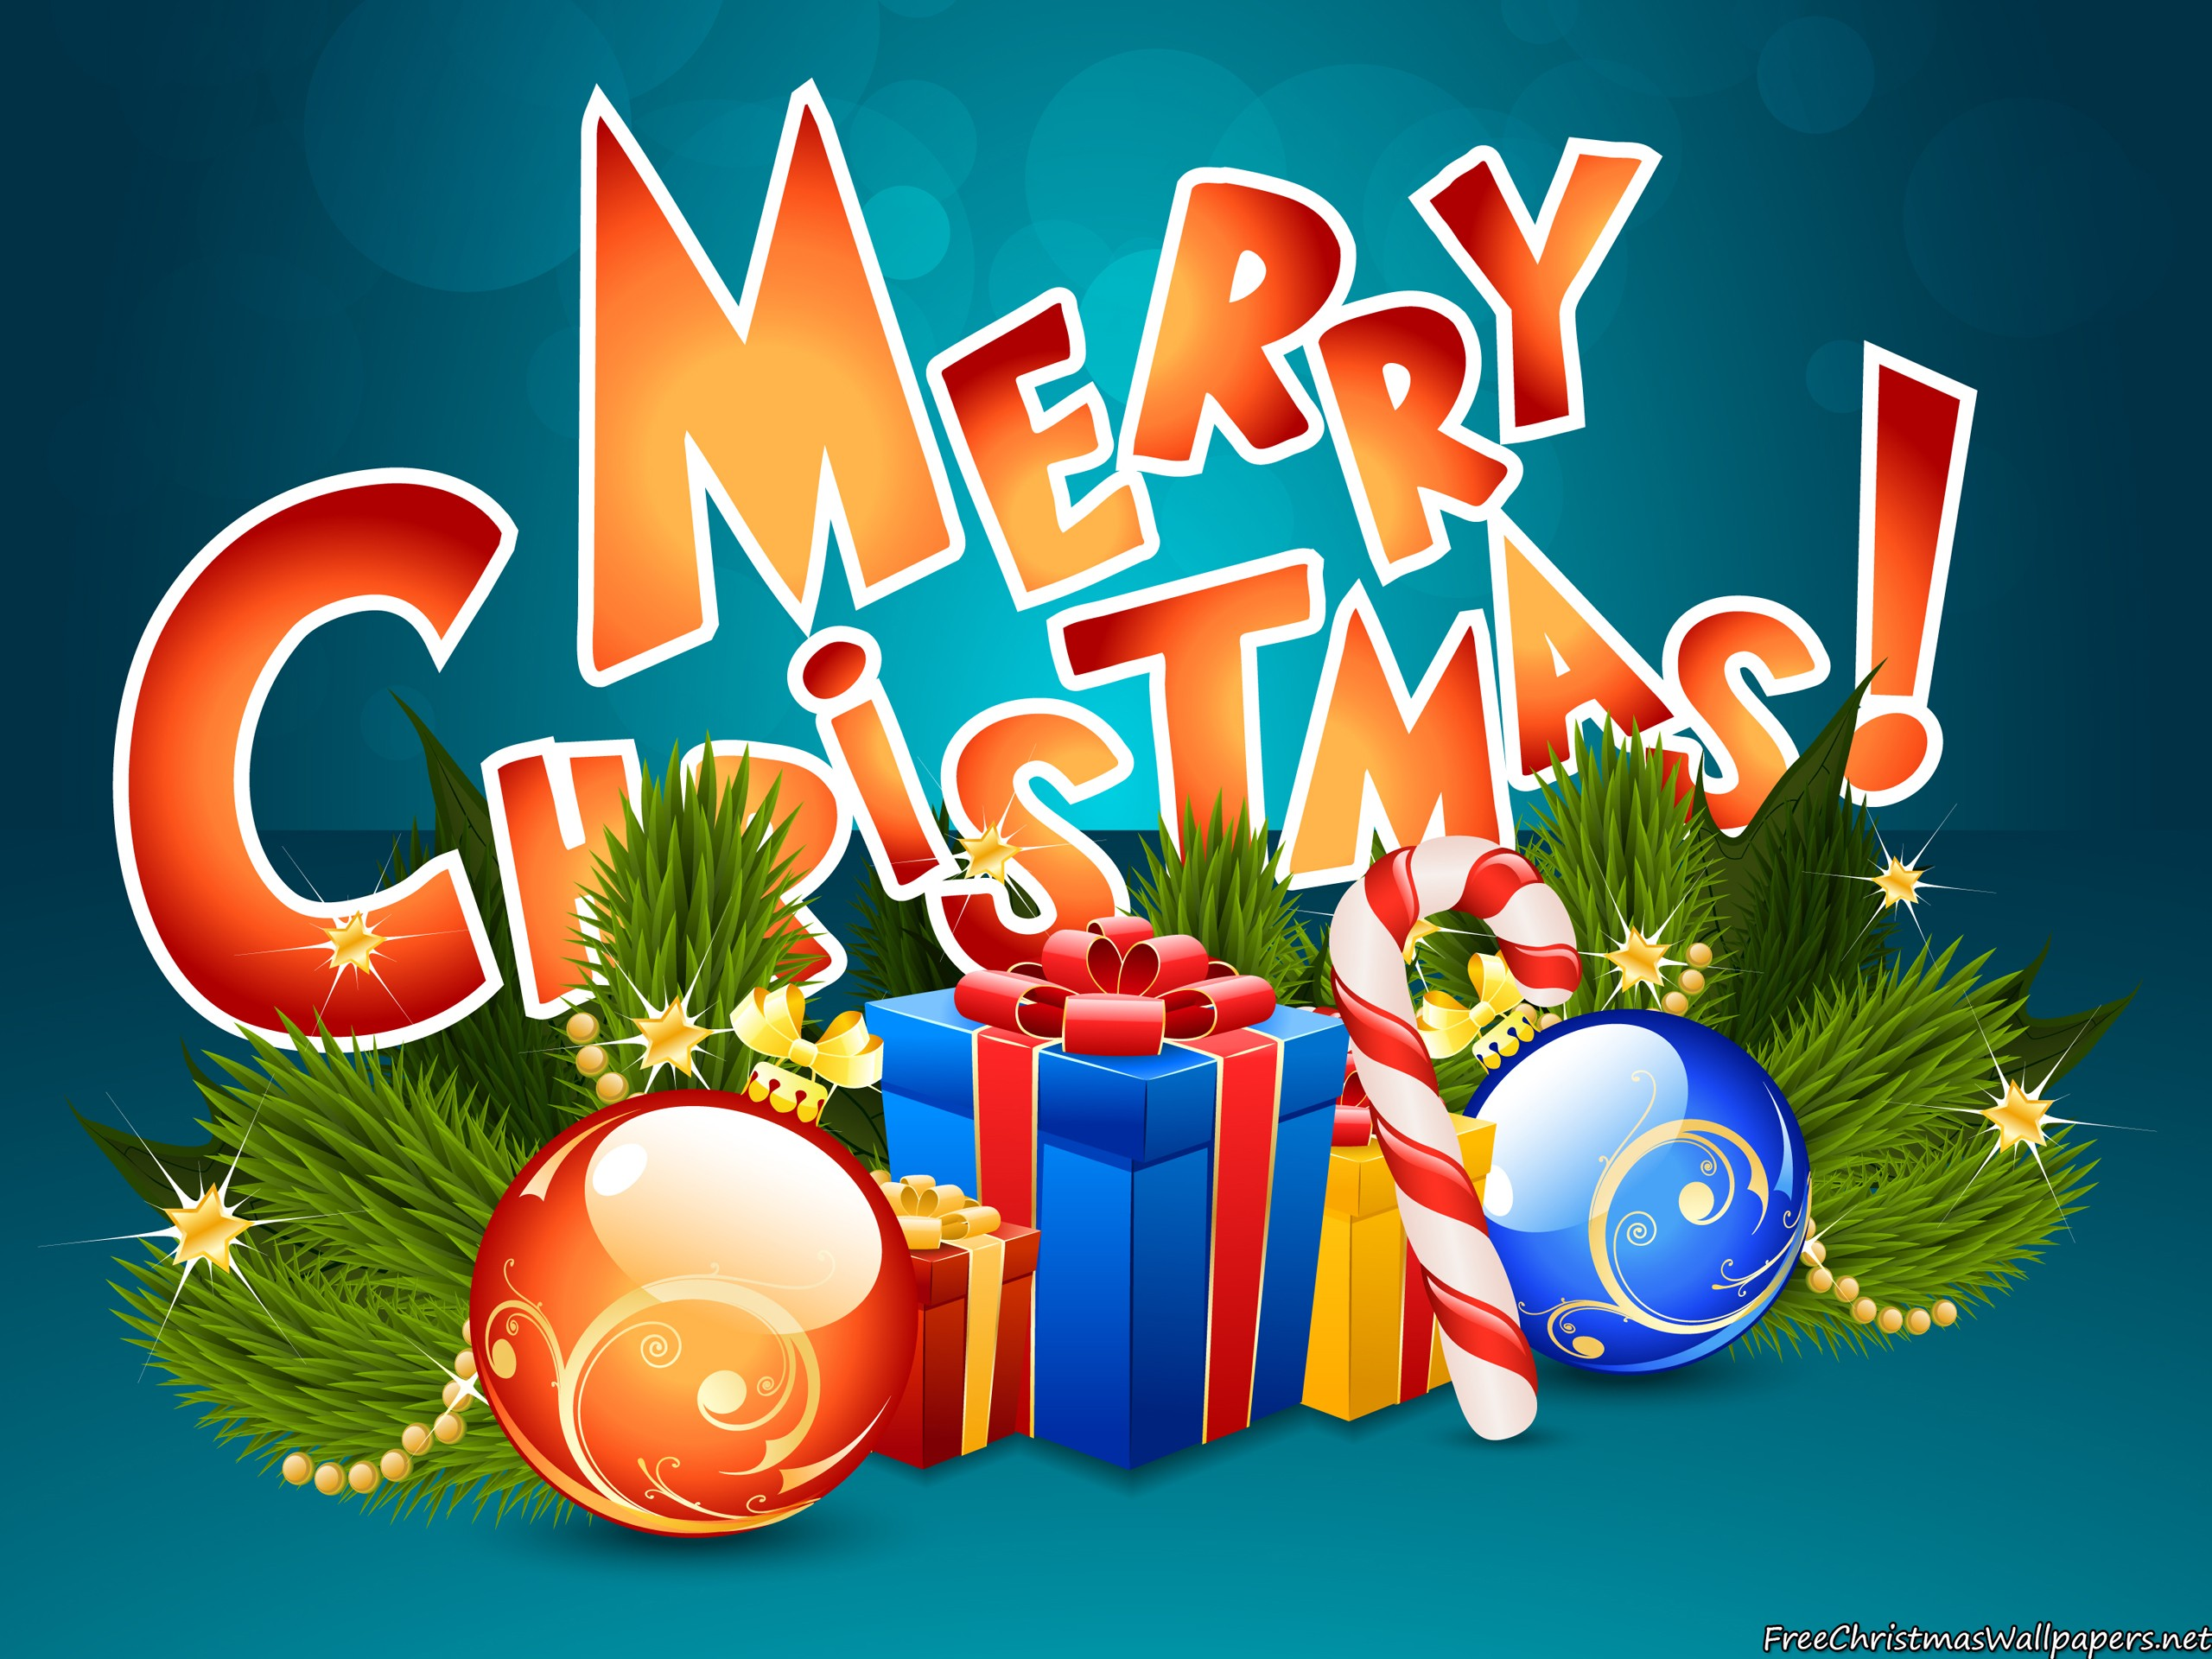 Merry Christmas Images Hd.Merry Christmas Hd Presents 2560x1920 Wallpaper